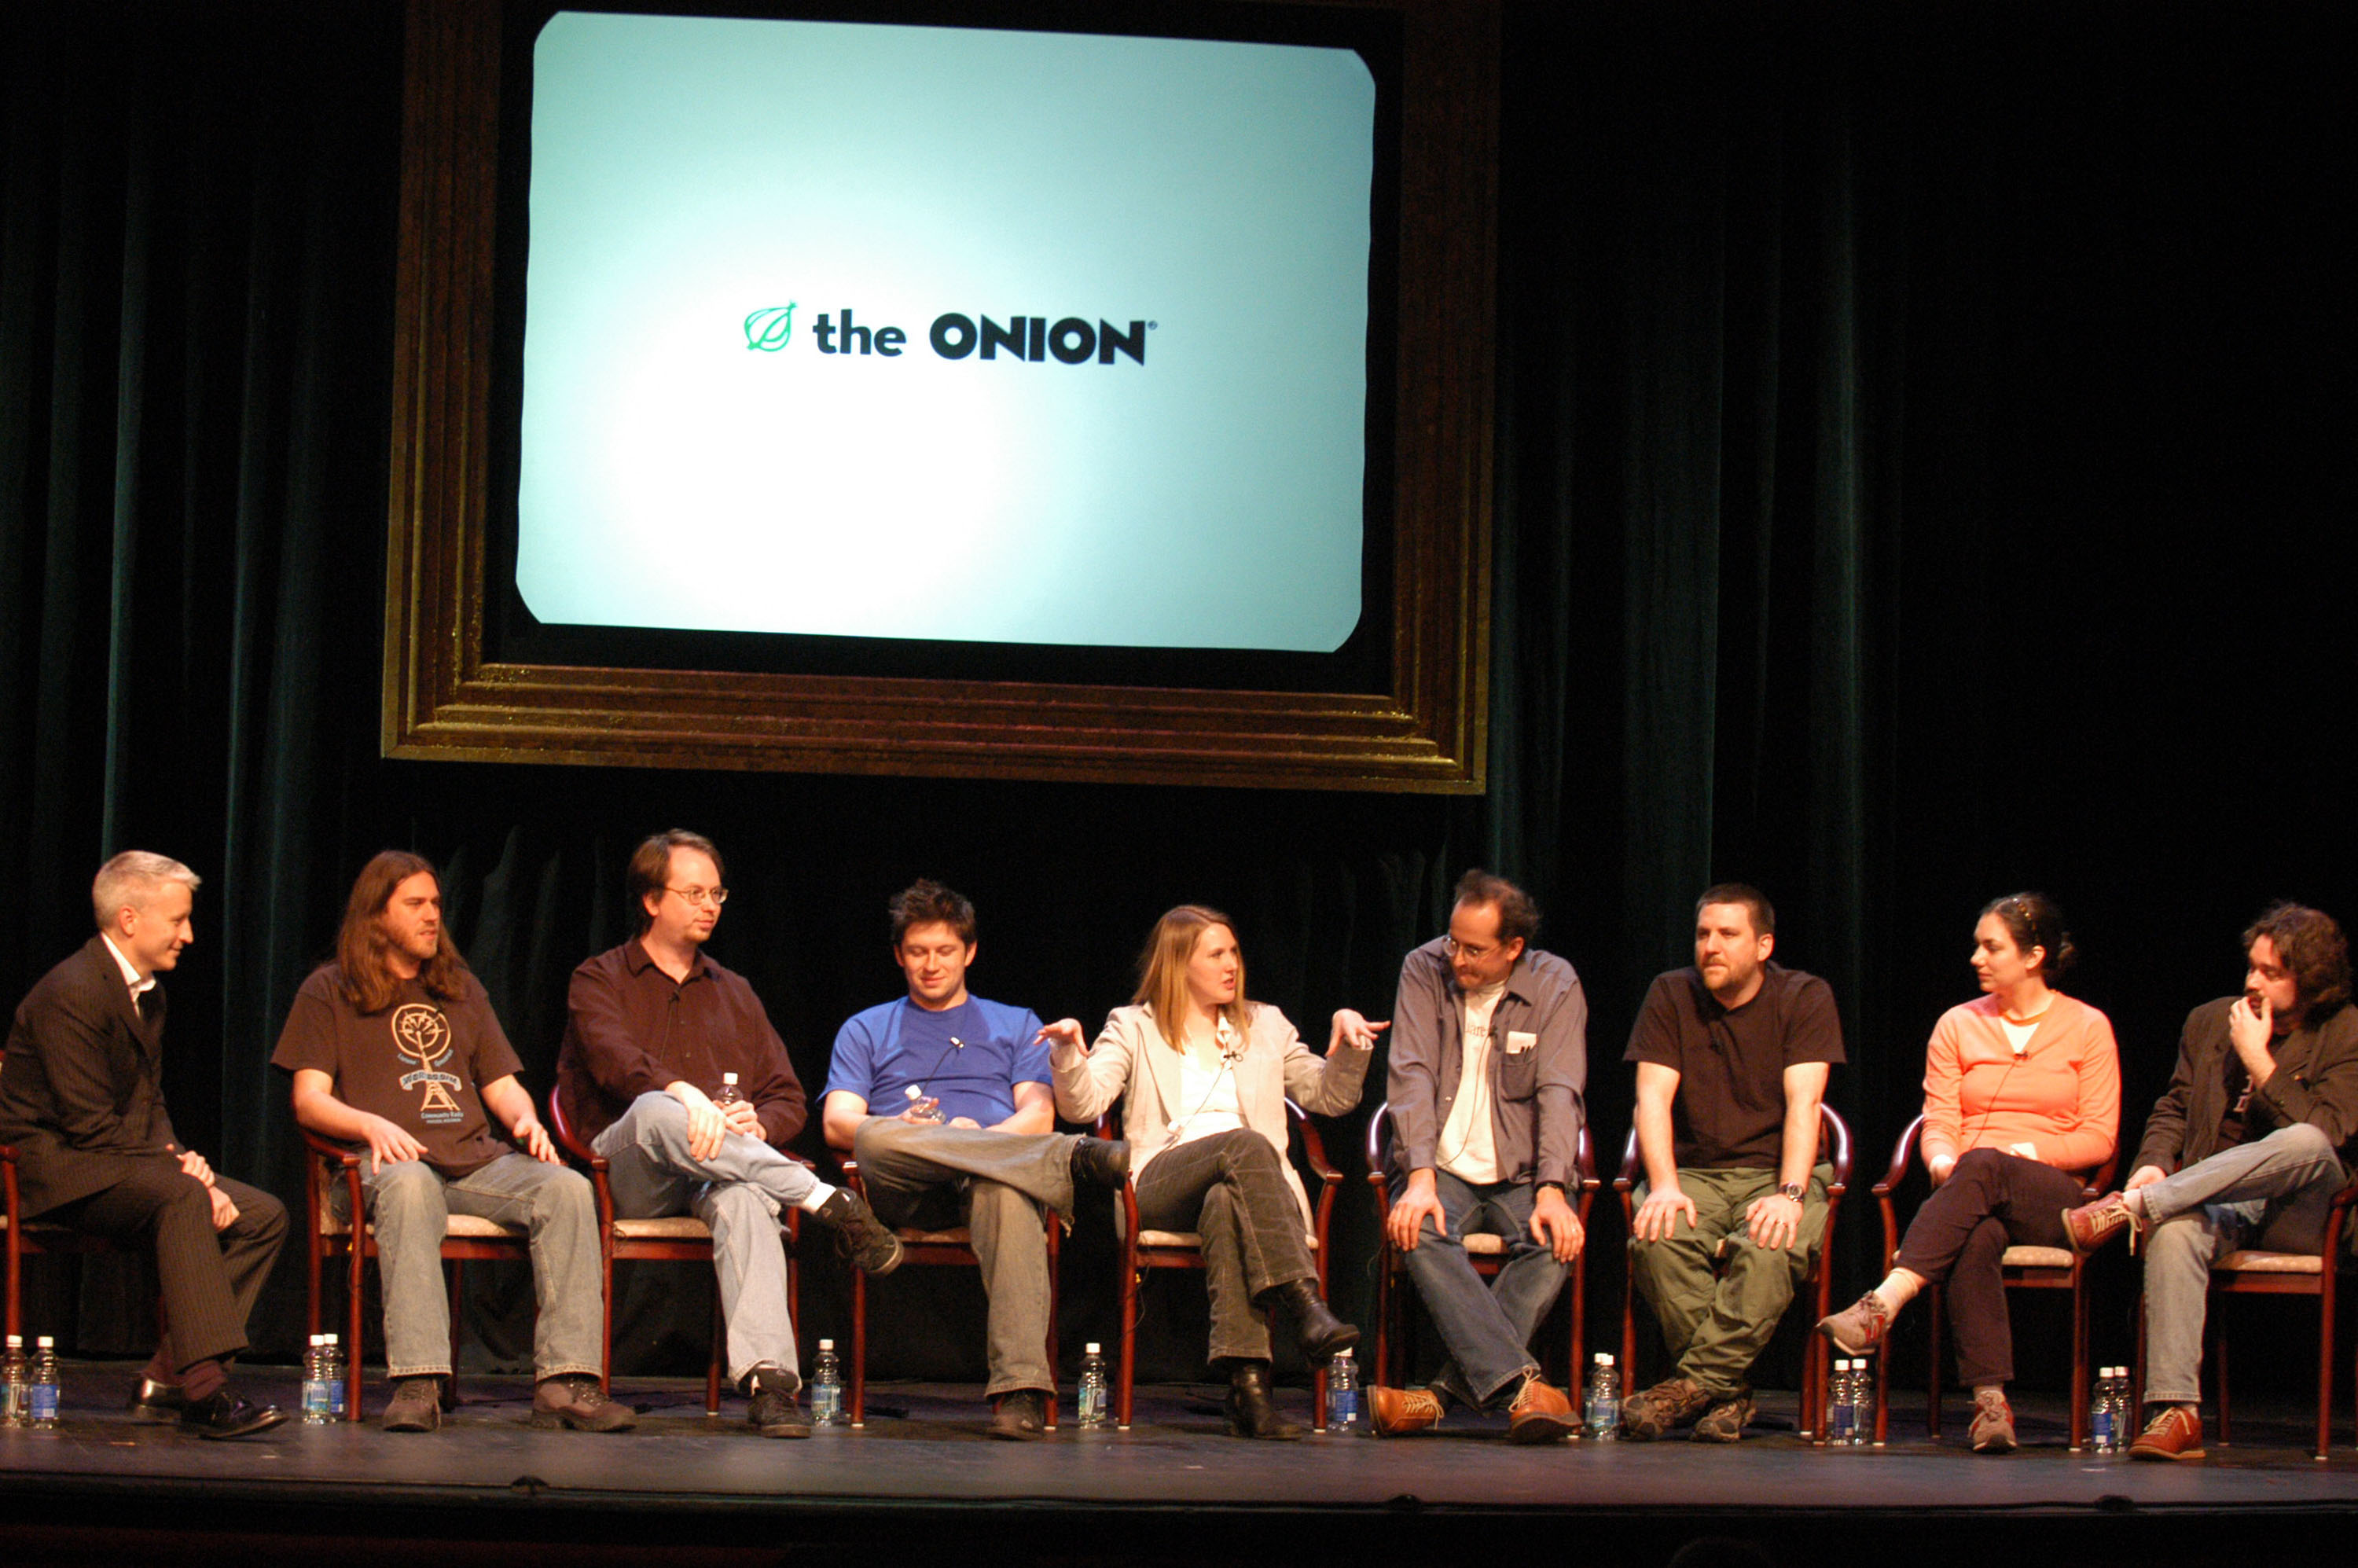 The 10th Annual U.S. Comedy Arts Festival - The Onion Live